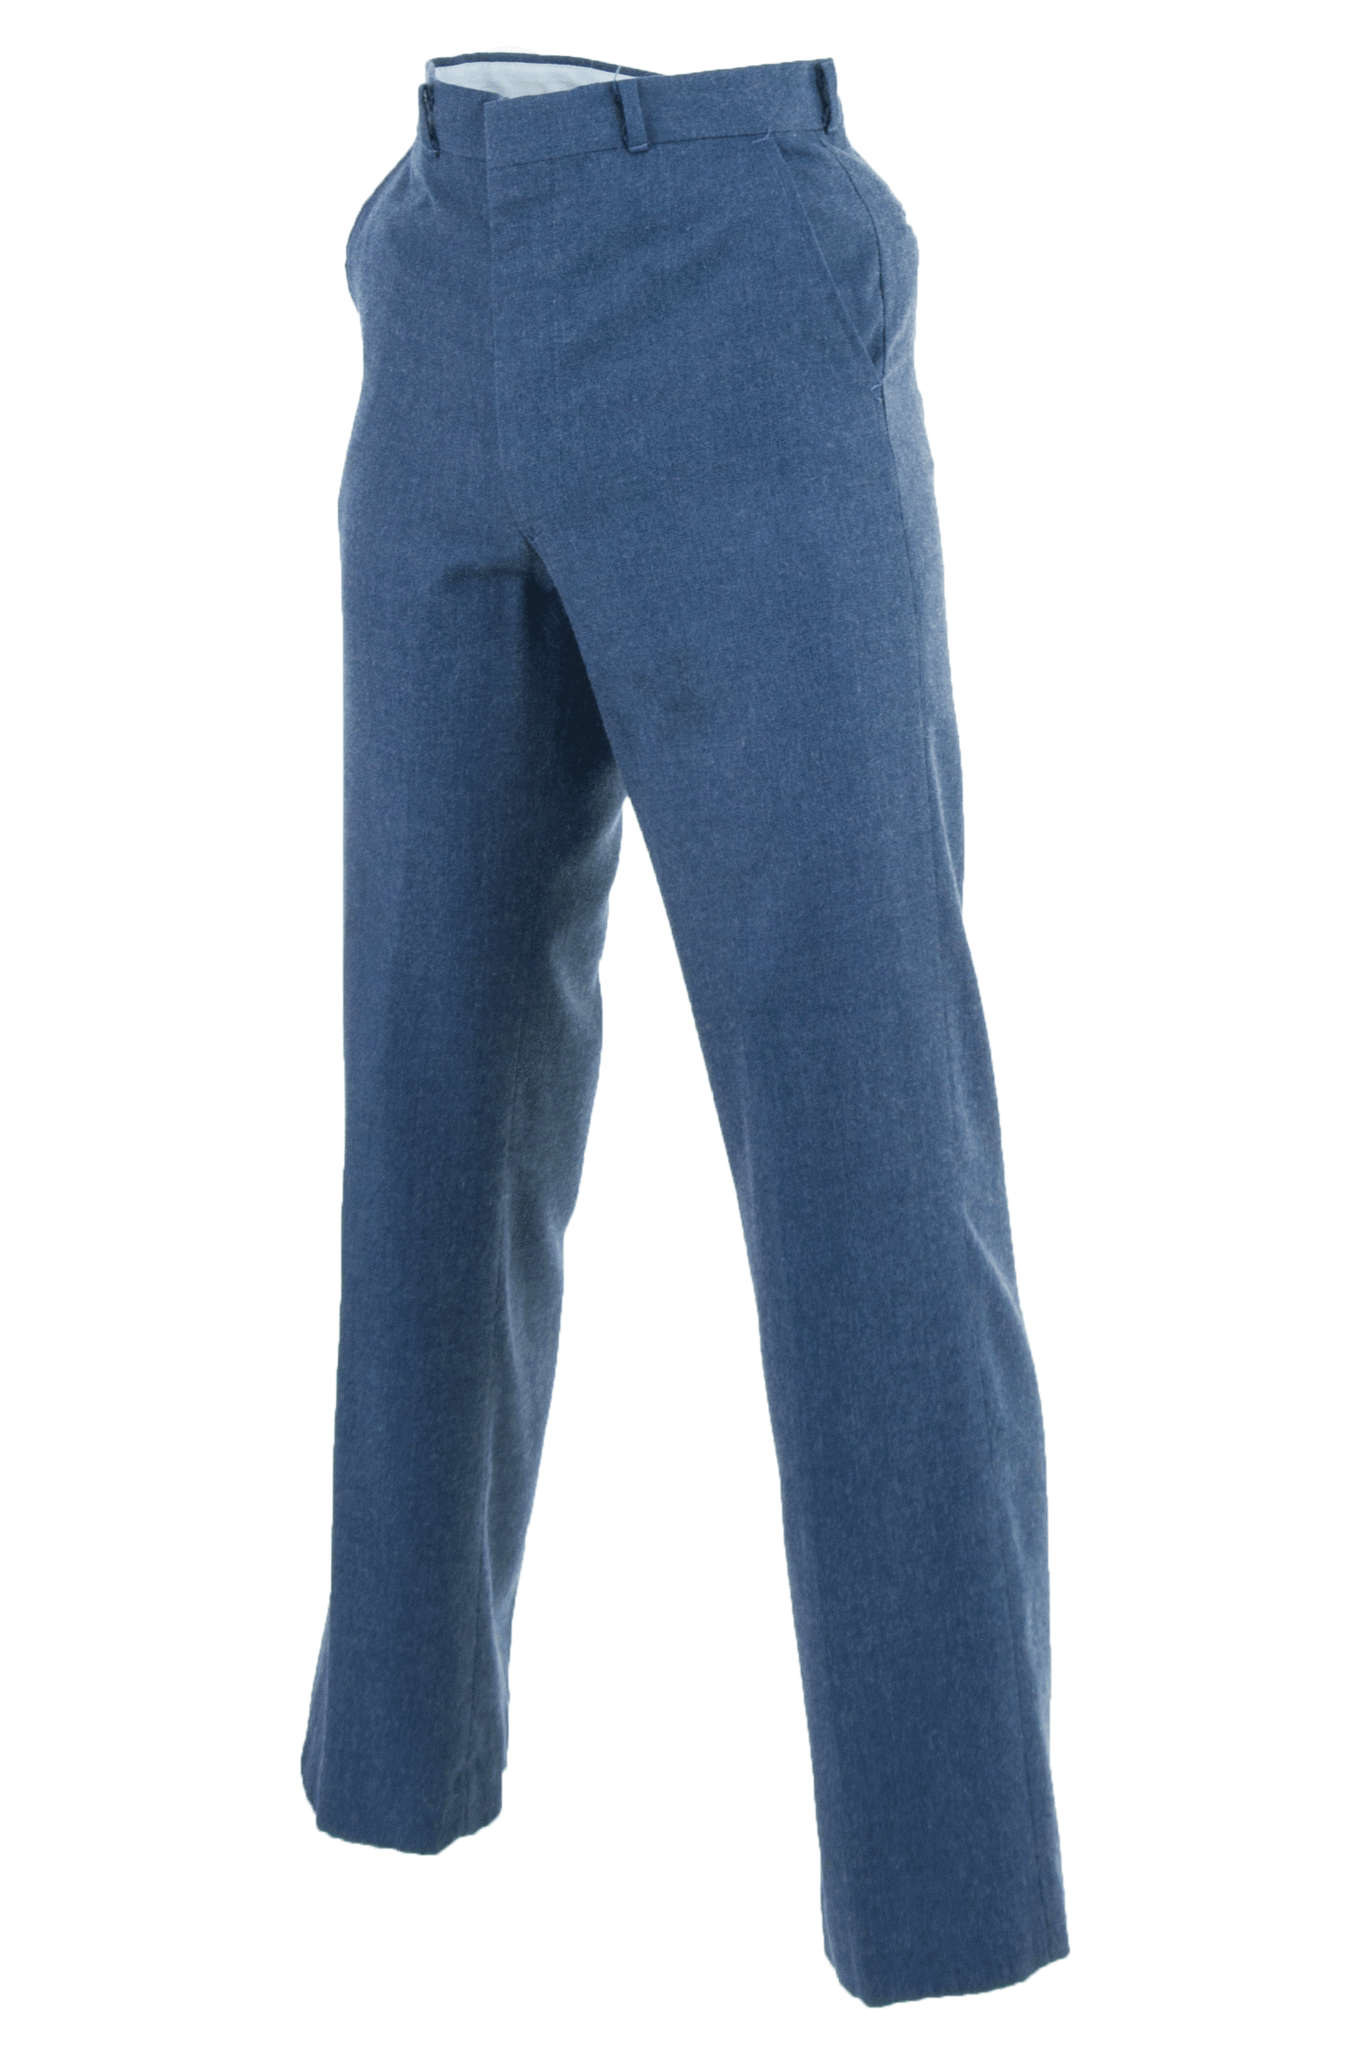 wool slacks in blue with flat front